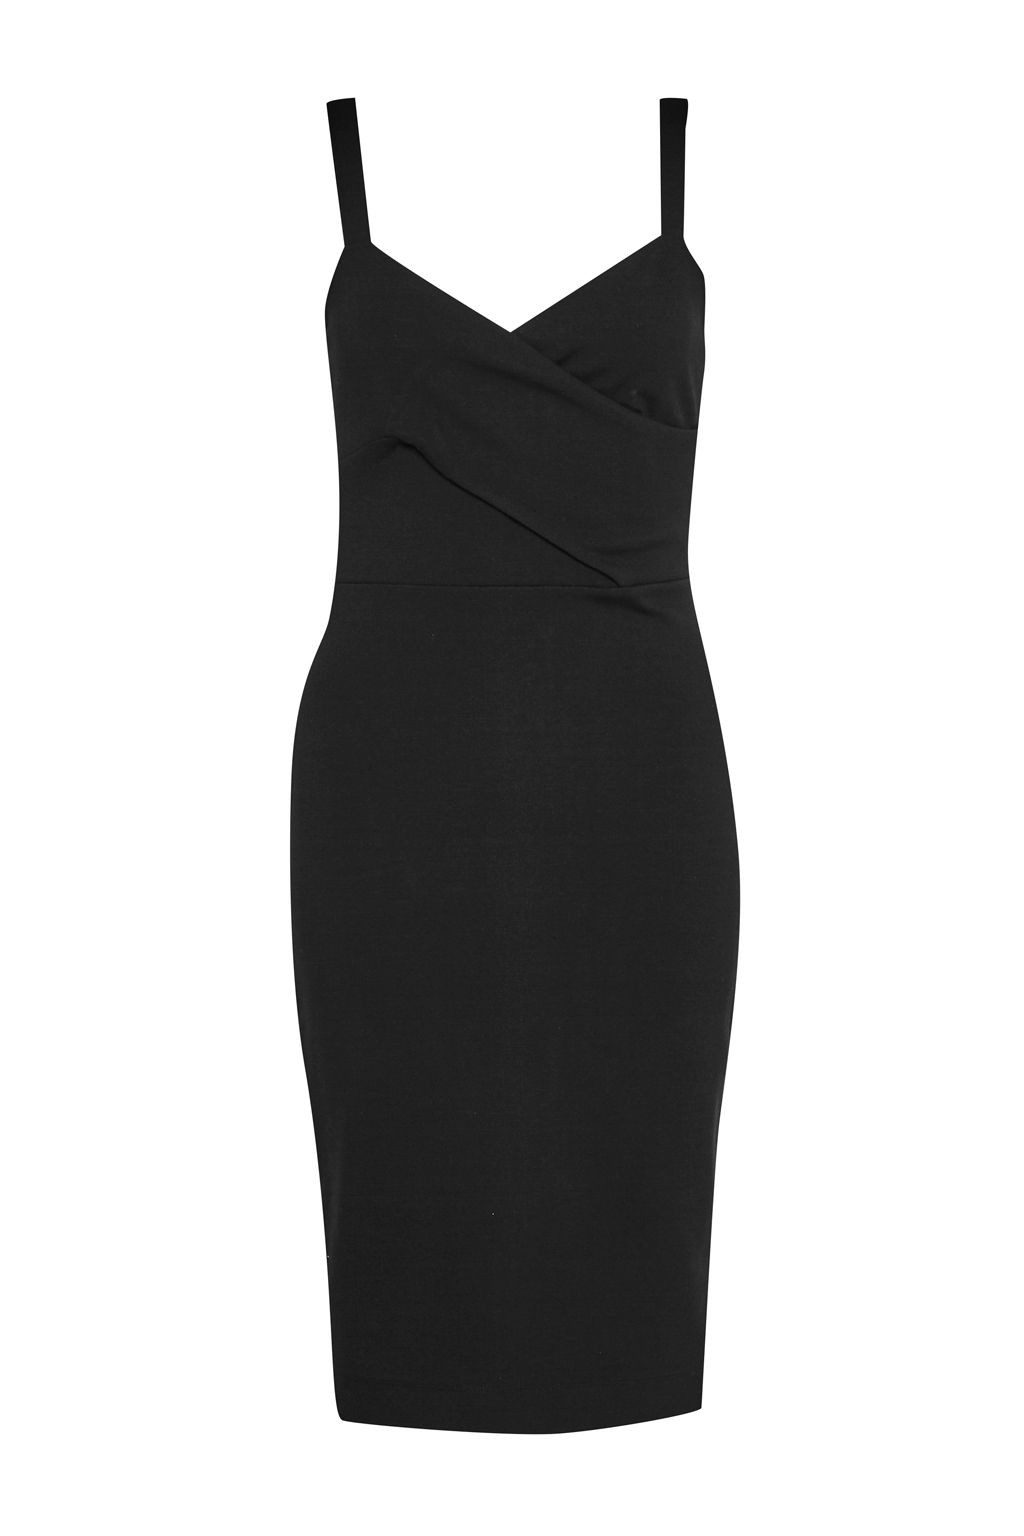 French Connection Lula Stretch Bustier Maxi Dress